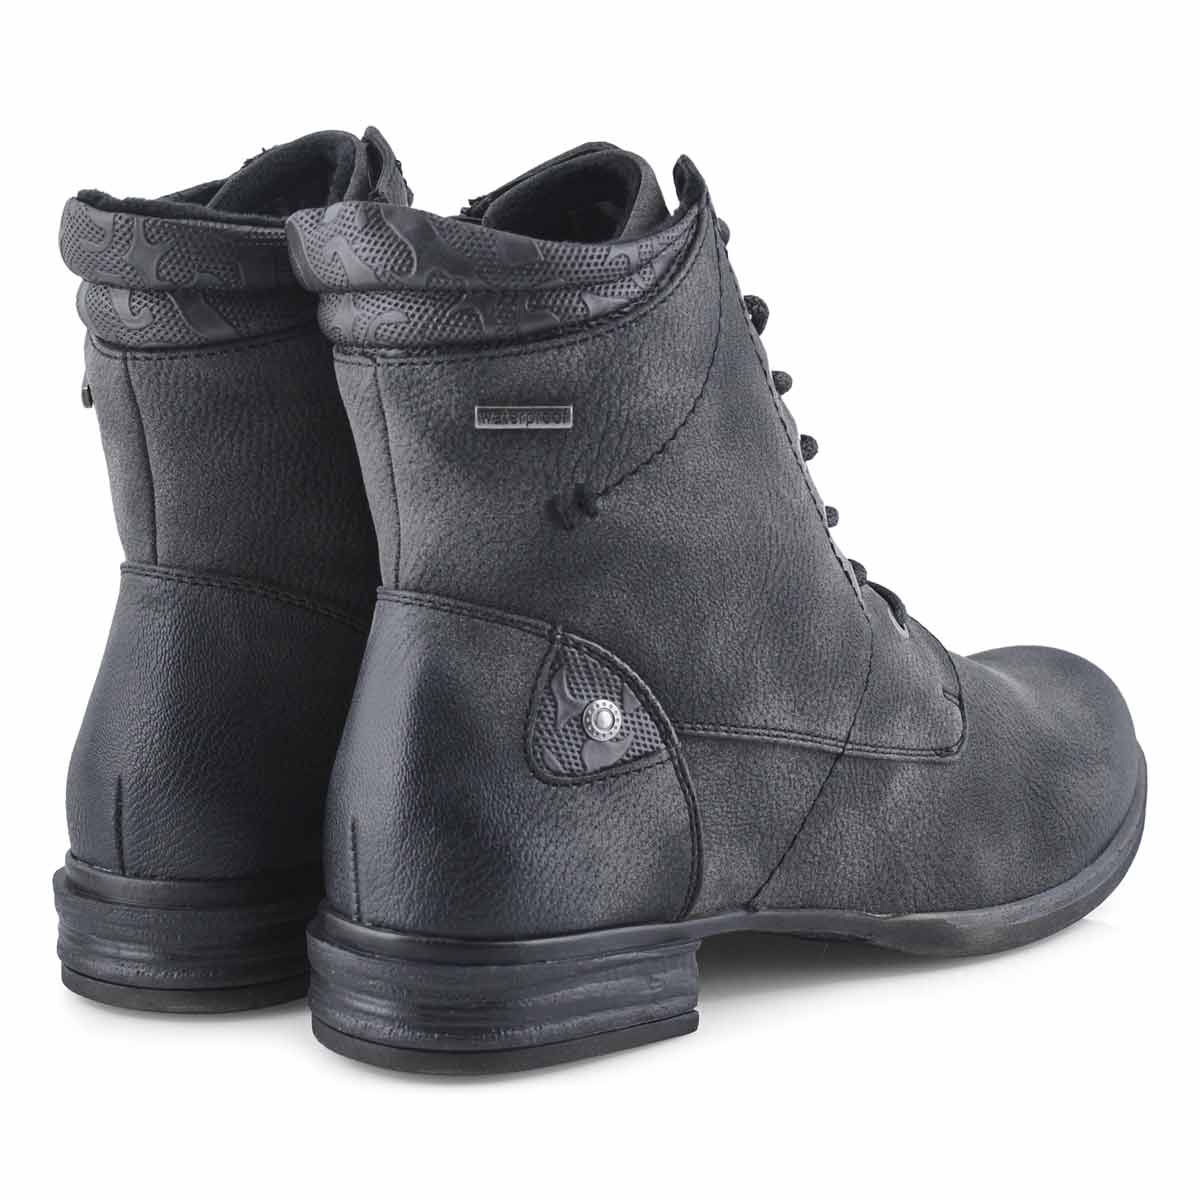 Lds Venus 34 grey combat boot